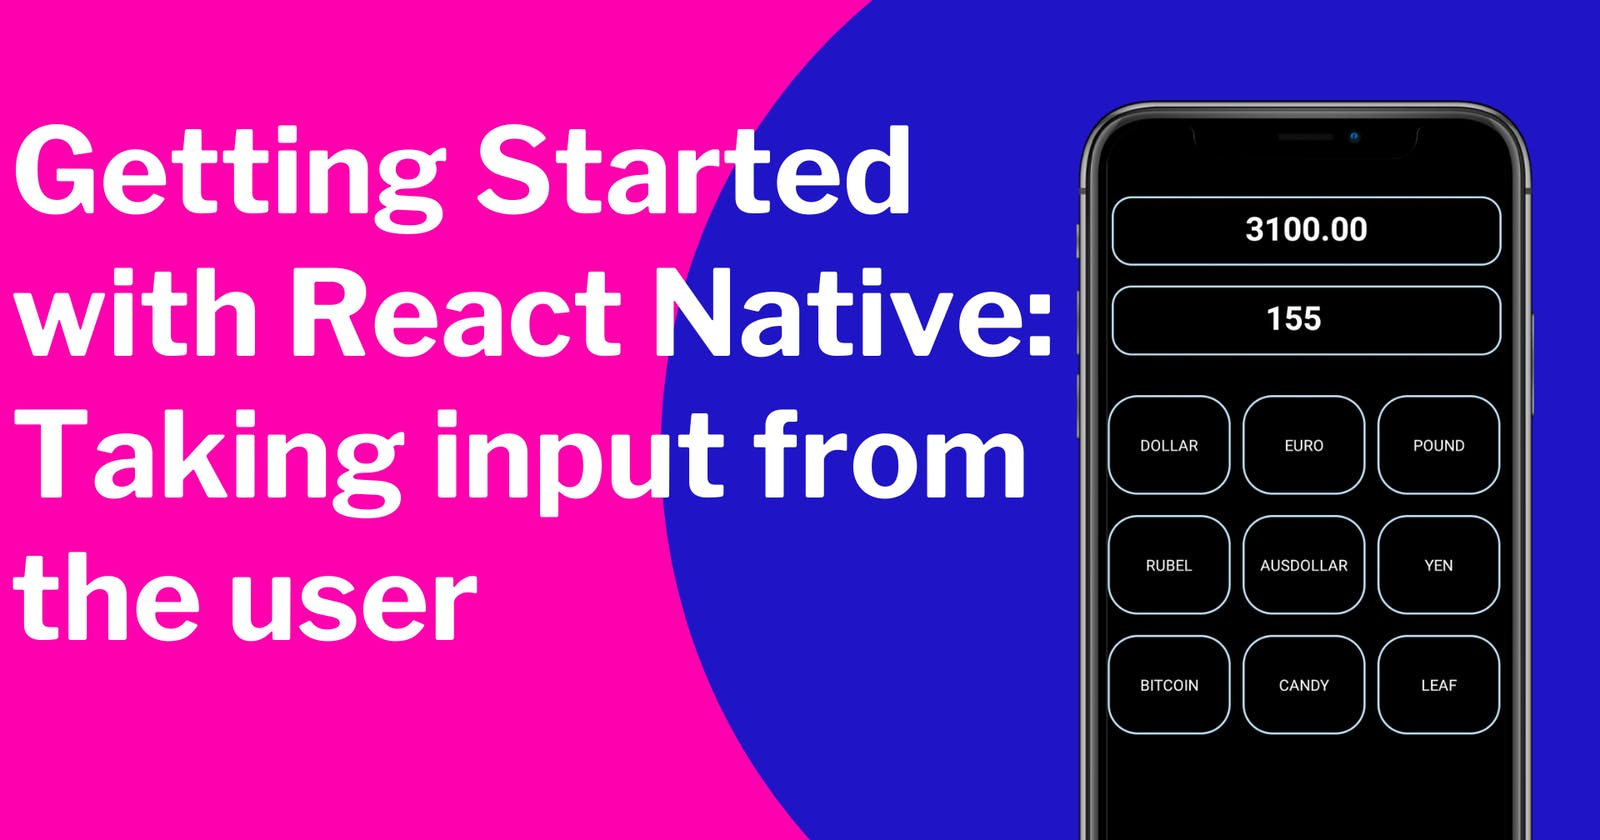 Getting Started with React Native: Taking input from the user